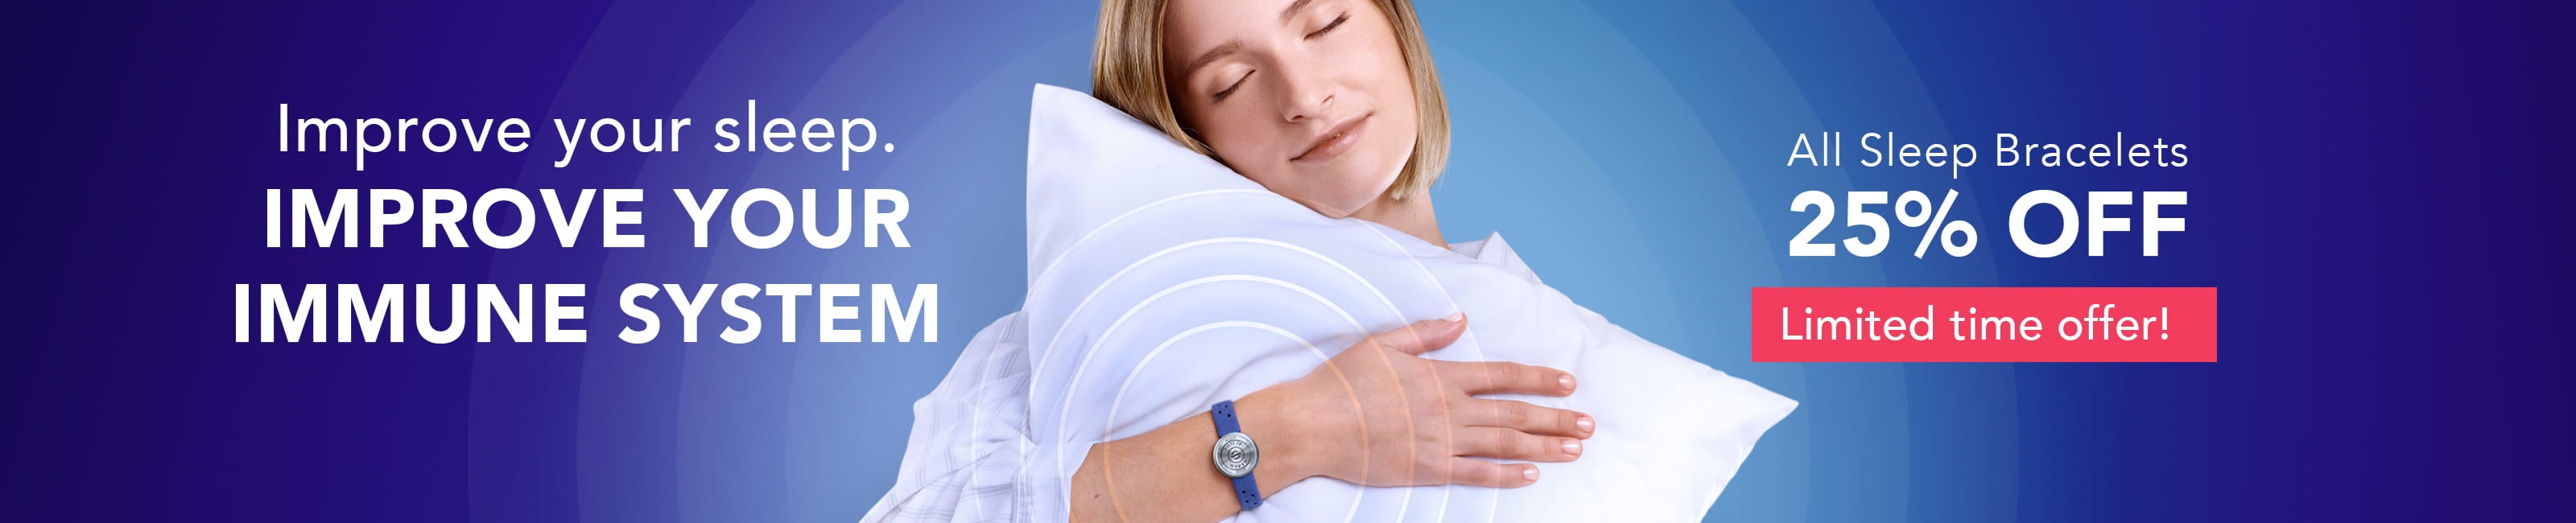 Improve your immune system - All Sleep Bracelets  25% OFF